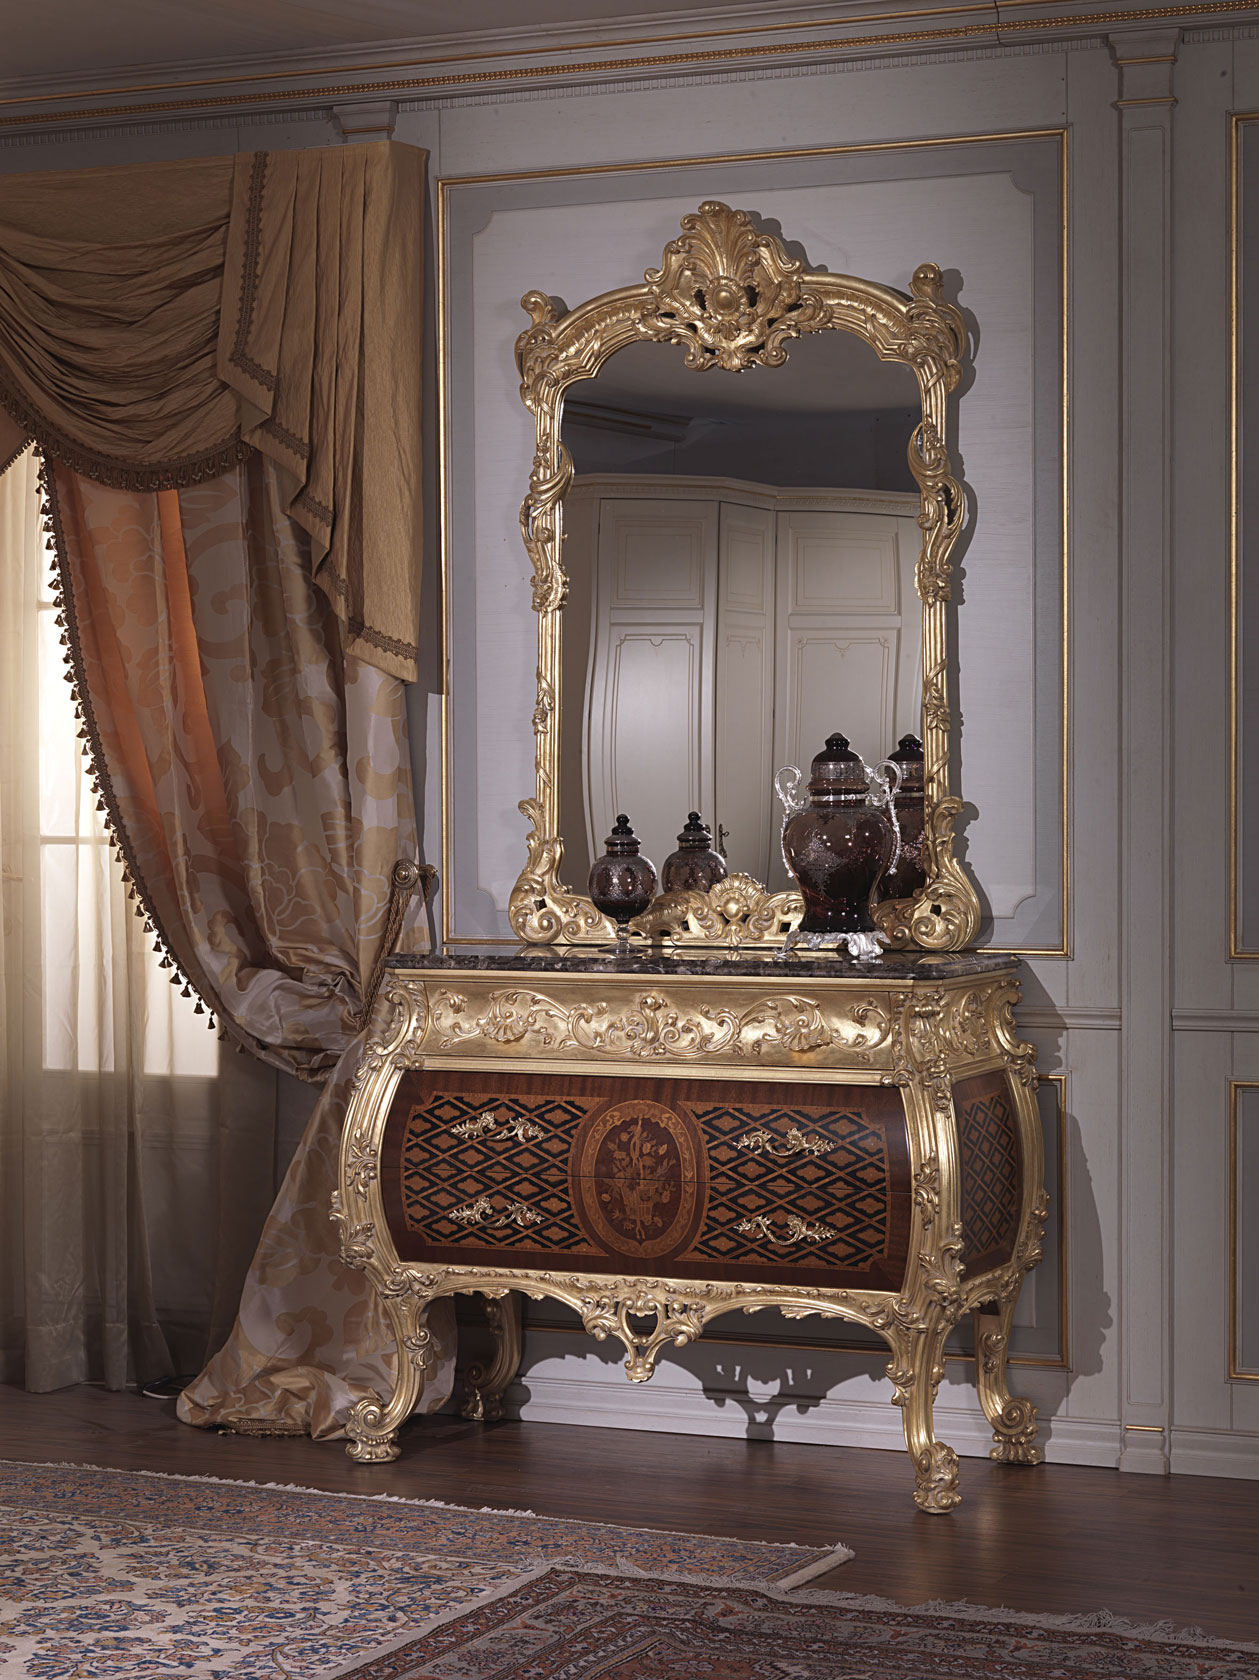 Classic italian bedroom 18th century with Louis XV chest